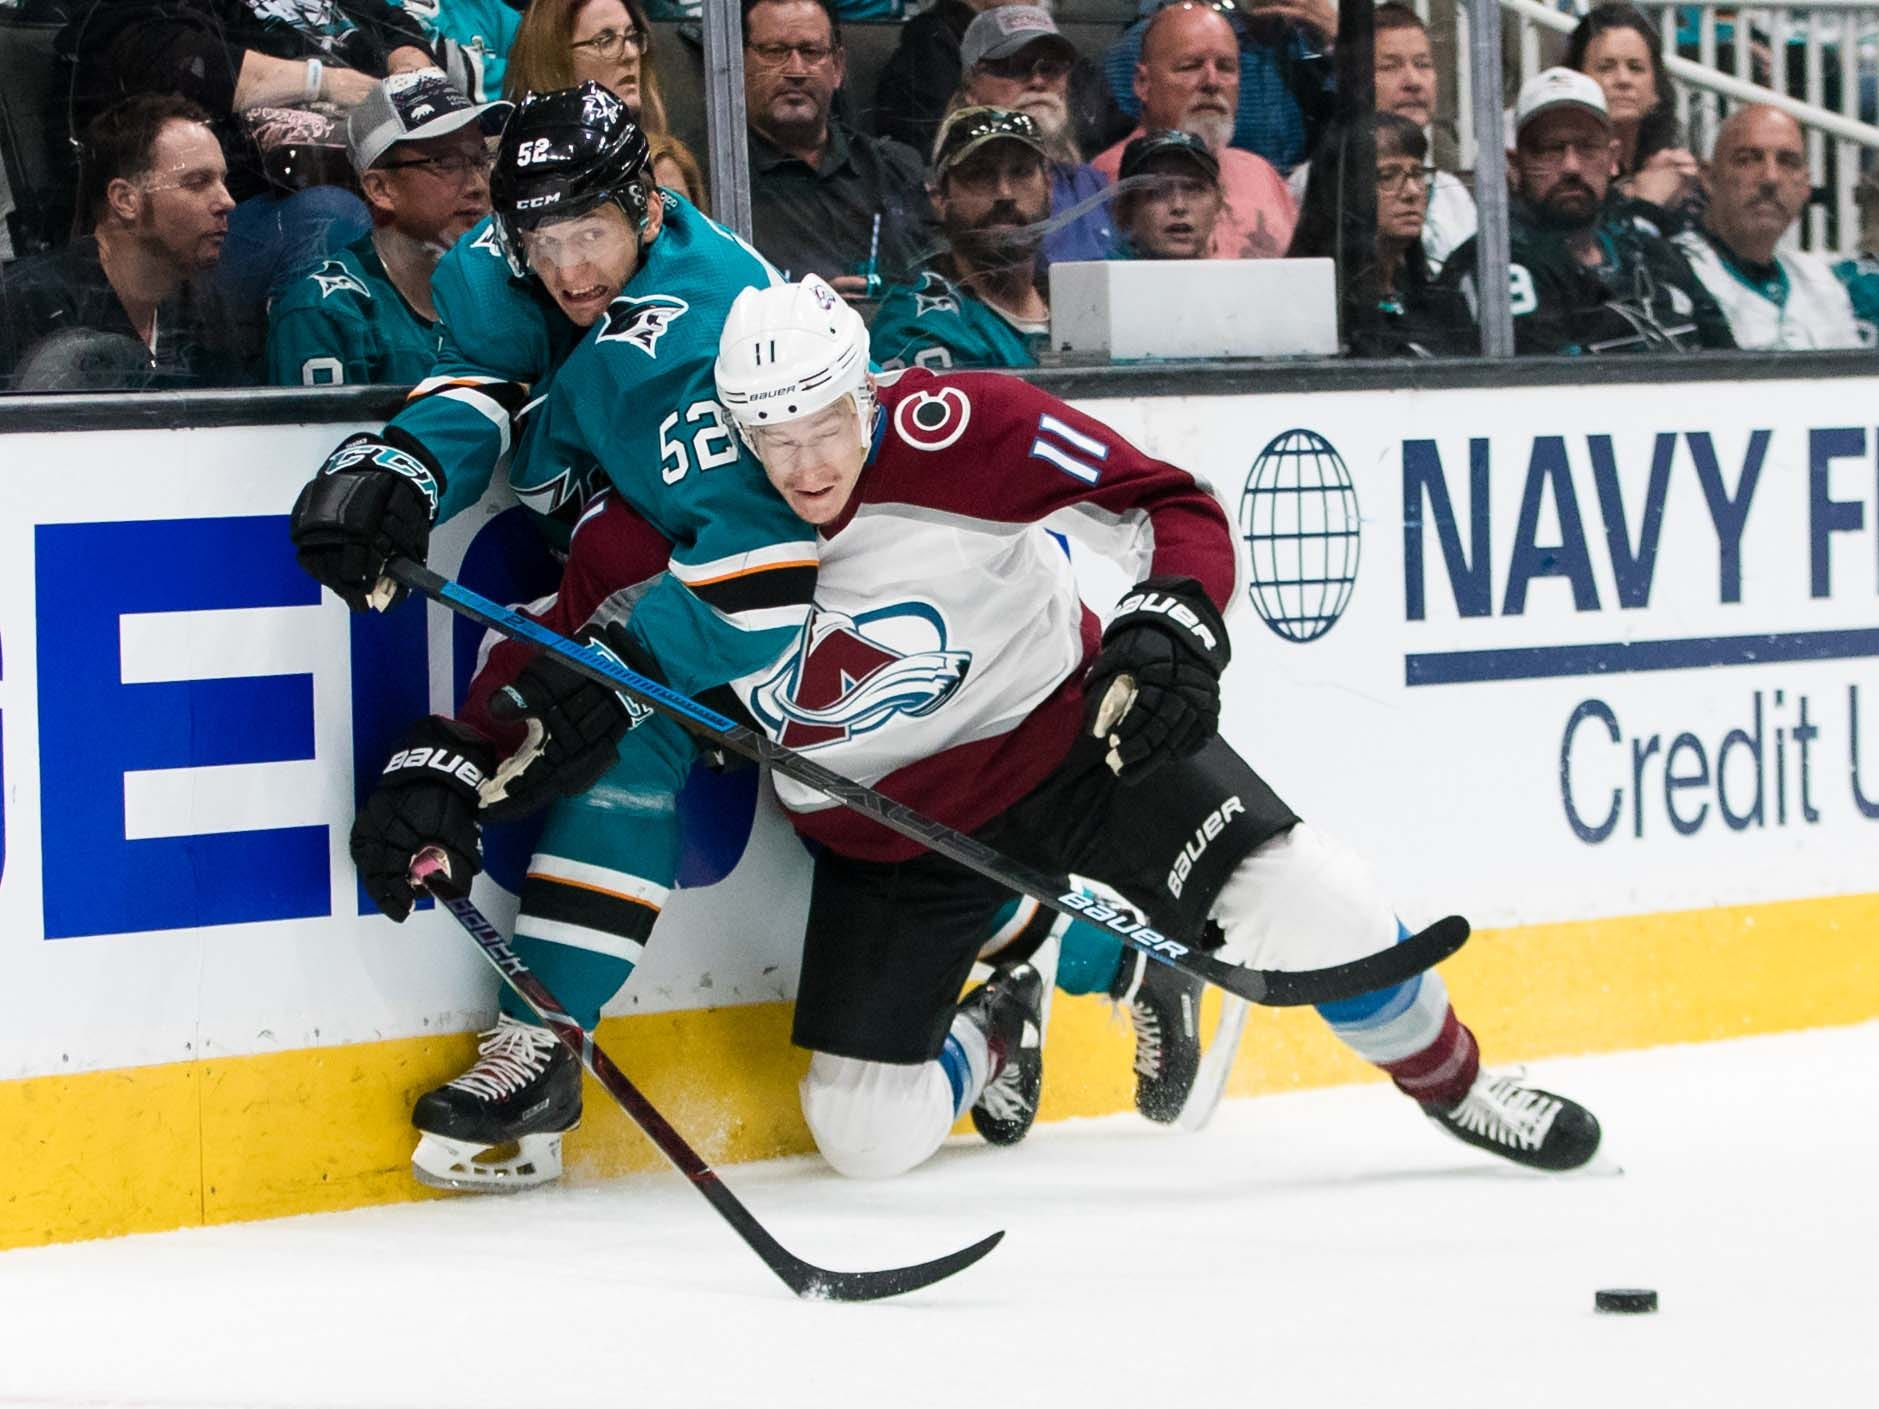 Second round: Avalanche LW Matt Calvert (11) collides with Sharks RW Kevin Labanc (62) during Game 2 in San Jose. Colorado won 4-3 to even the series at a game apiece.